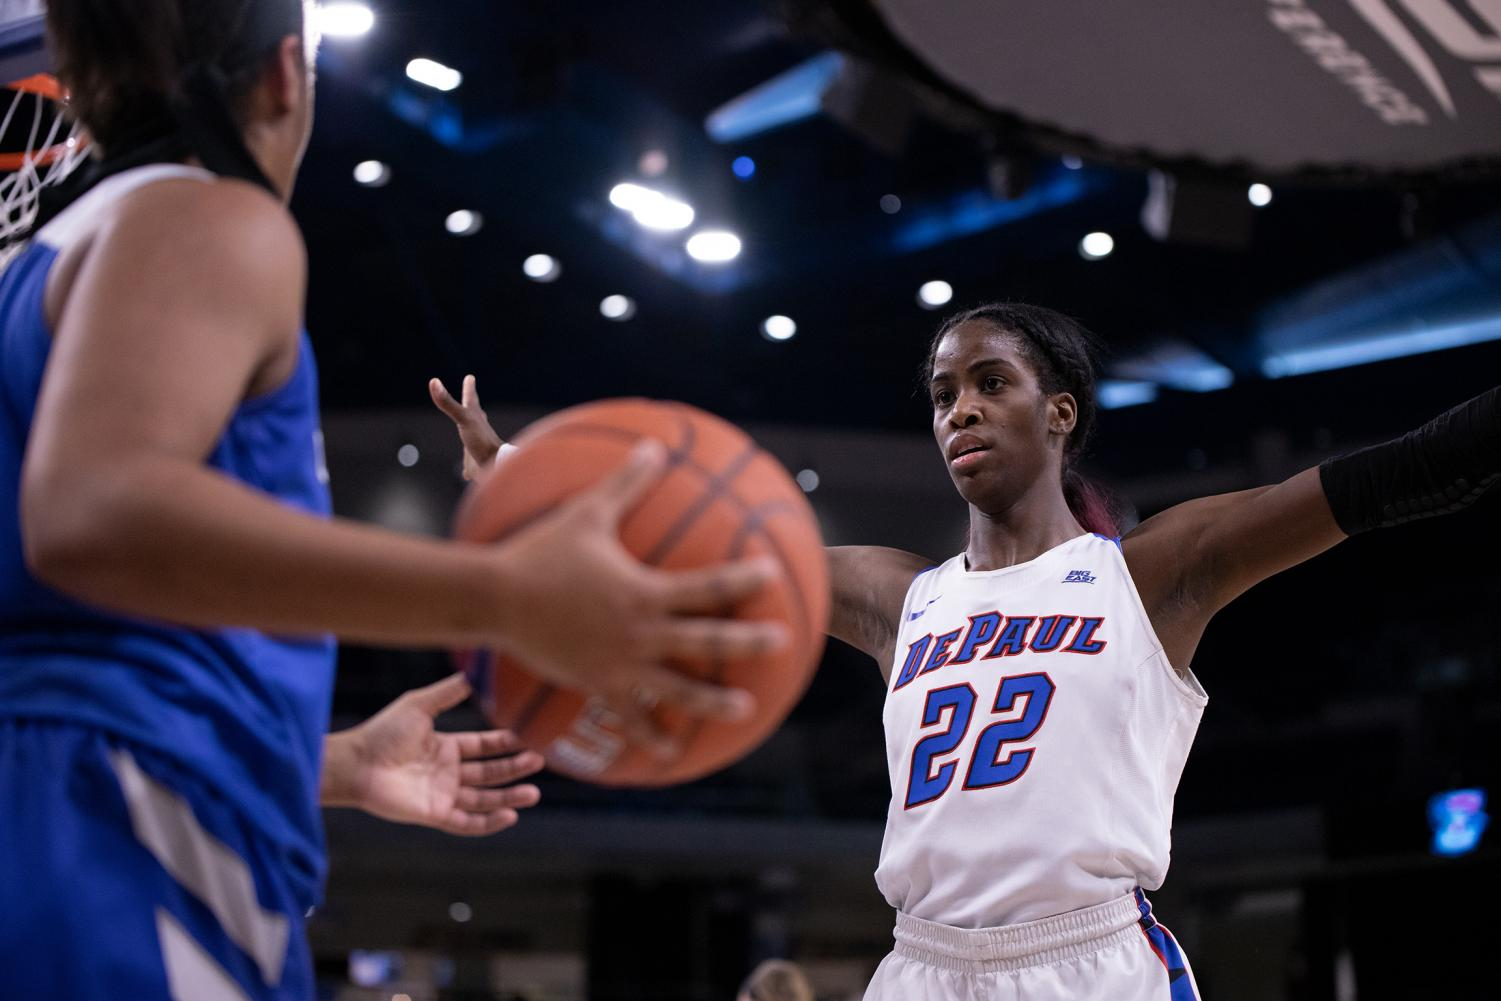 DePaul junior forward Chante Stonewall defends an inbounds pass during the Blue Demons Big East Championship semifinal game against Wintrust Arena. Alexa Sandler | The DePaulia